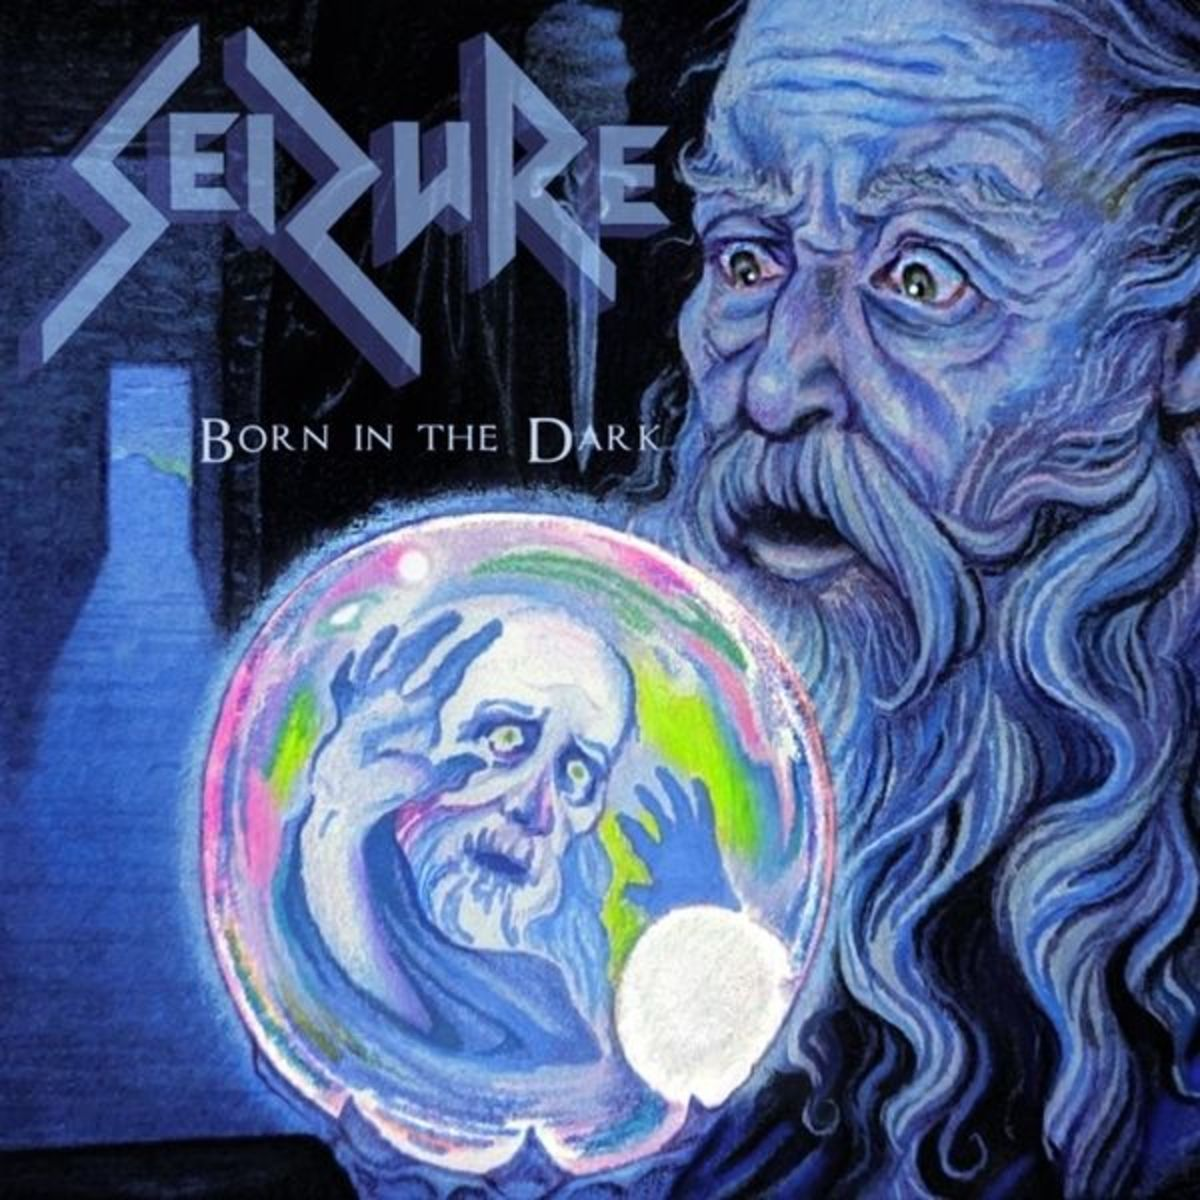 review-of-the-album-born-in-the-dark-by-seizure